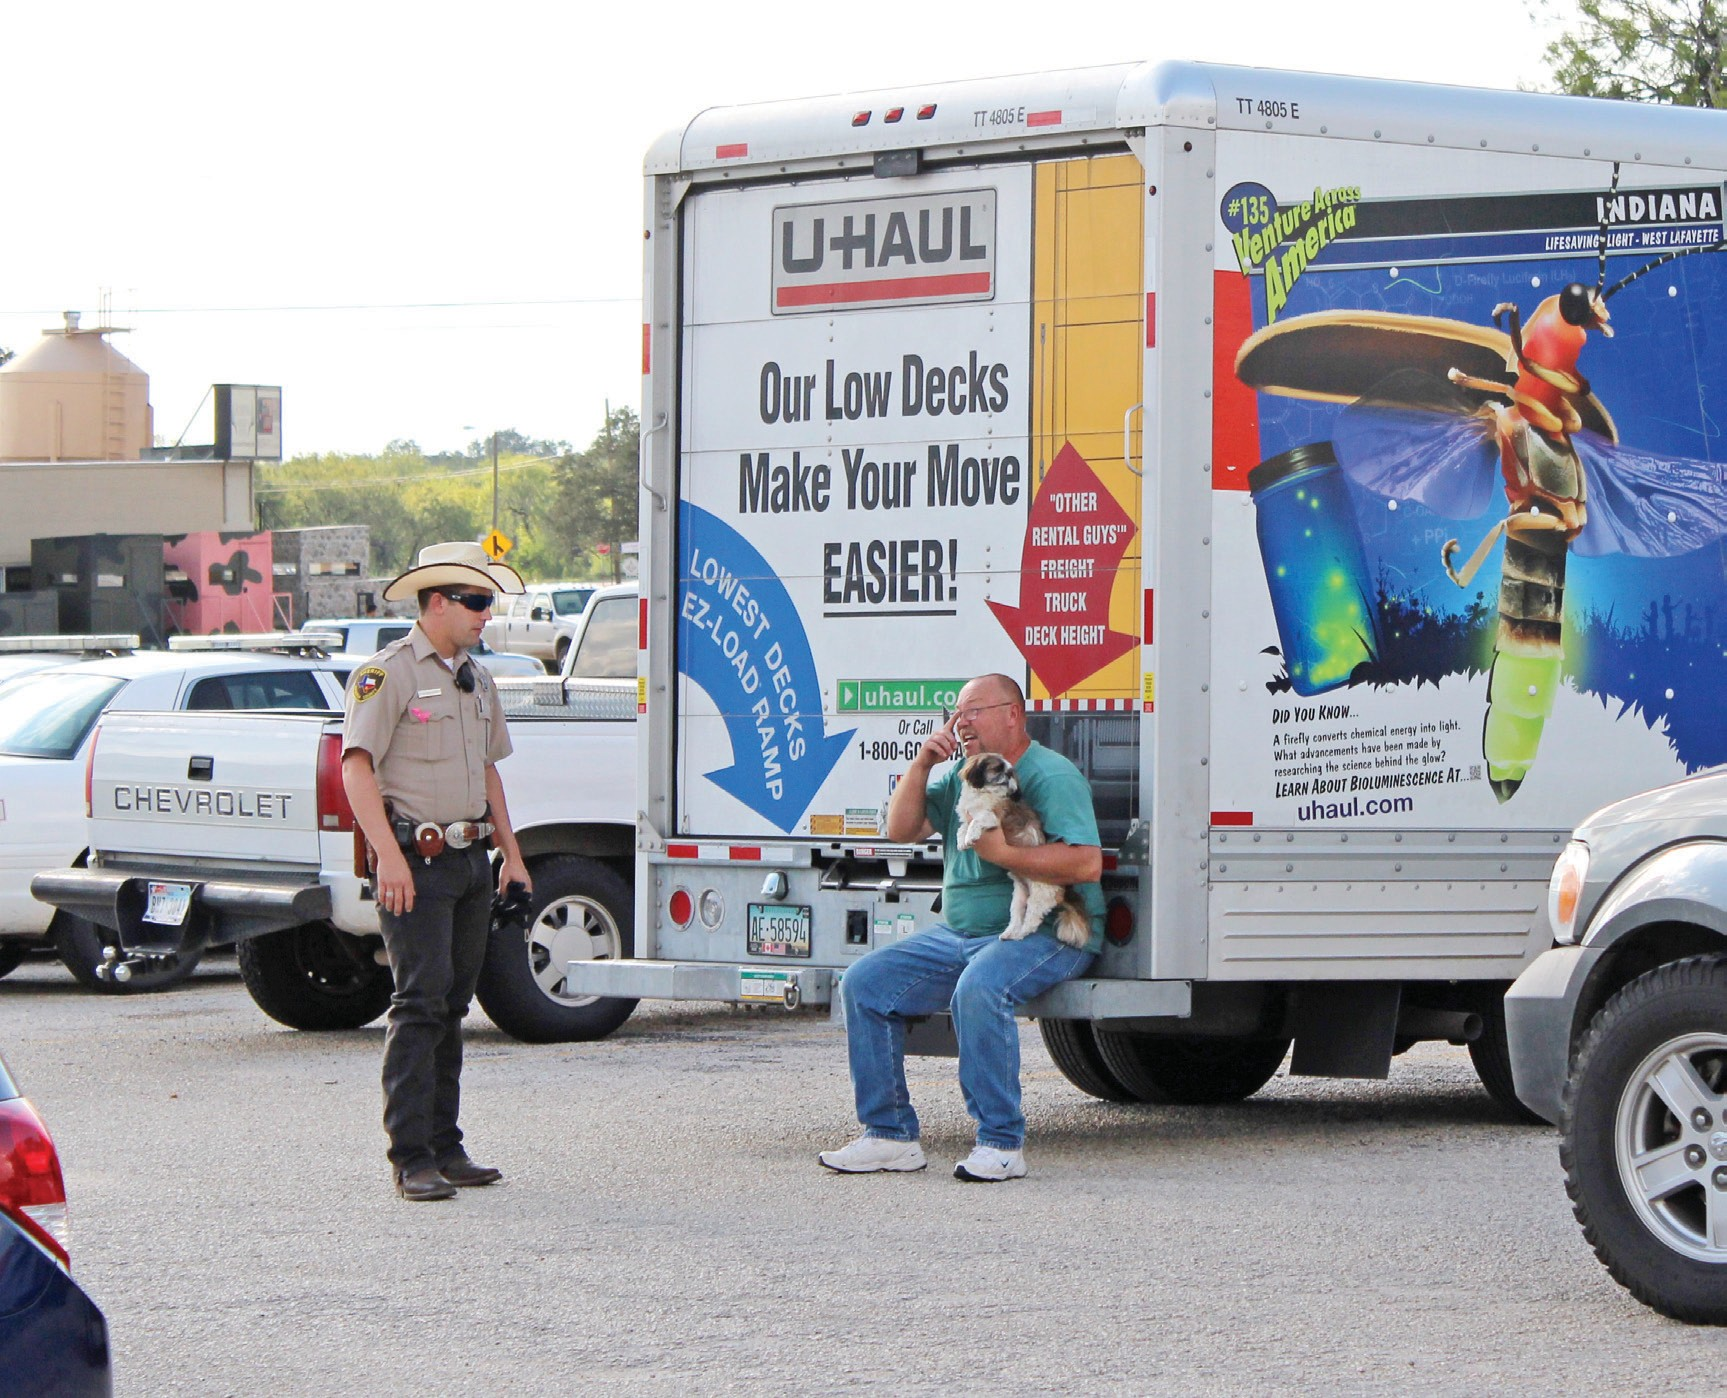 Atascosa County Sheriff's Deputy Stephen Wilson along with other deputies detained Tammy & Kenneth Micheal Collins. The Collins' were alleged to have stolen items from several homes and were transporting them in a U-Haul truck.